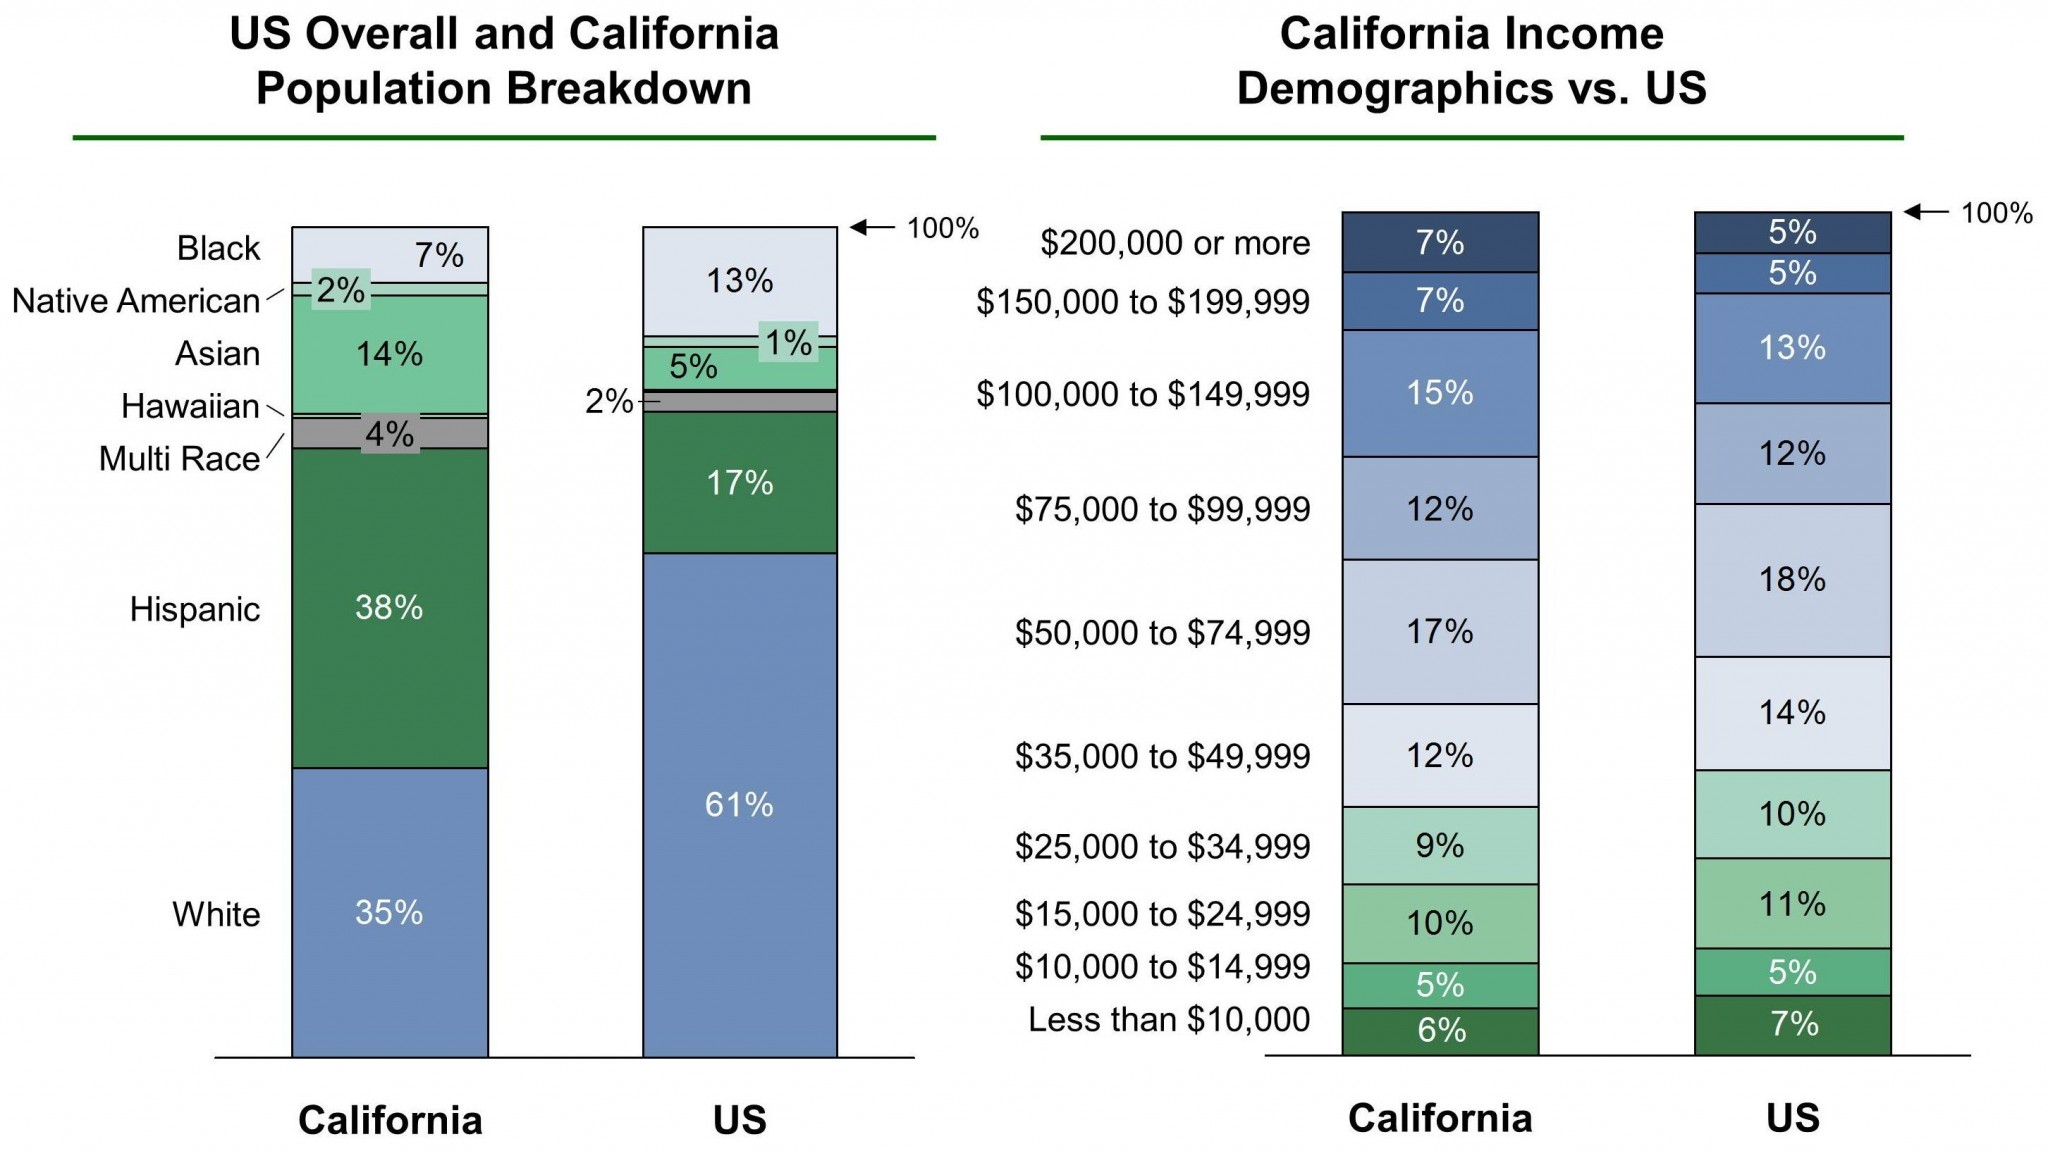 California EB-5 Regional Center Demographics VF